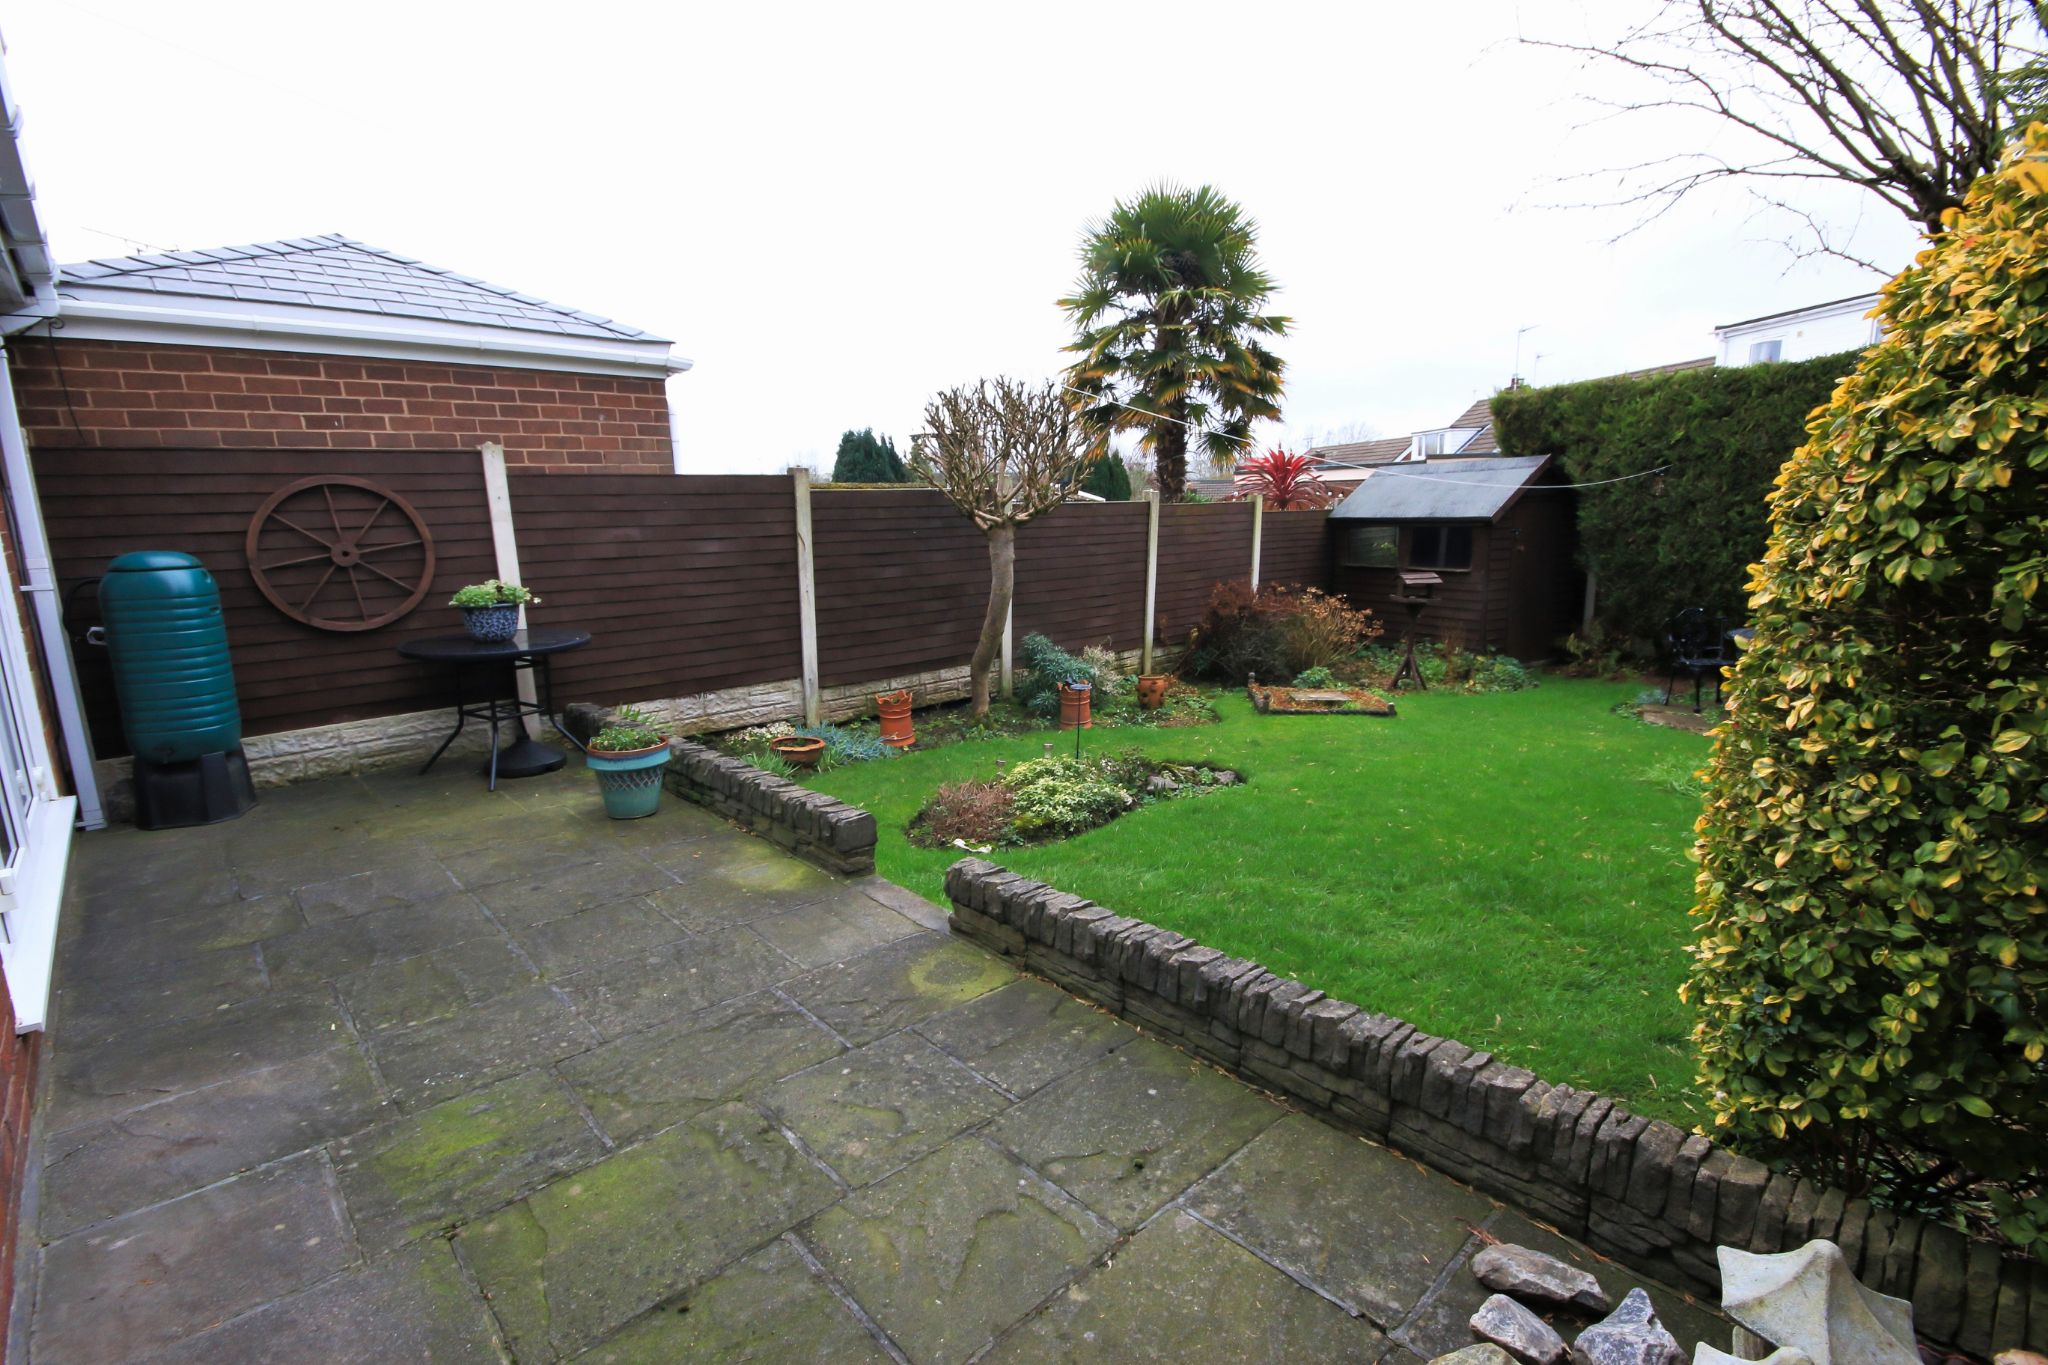 2 Bedroom Semi-detached Bungalow For Sale - Photograph 18